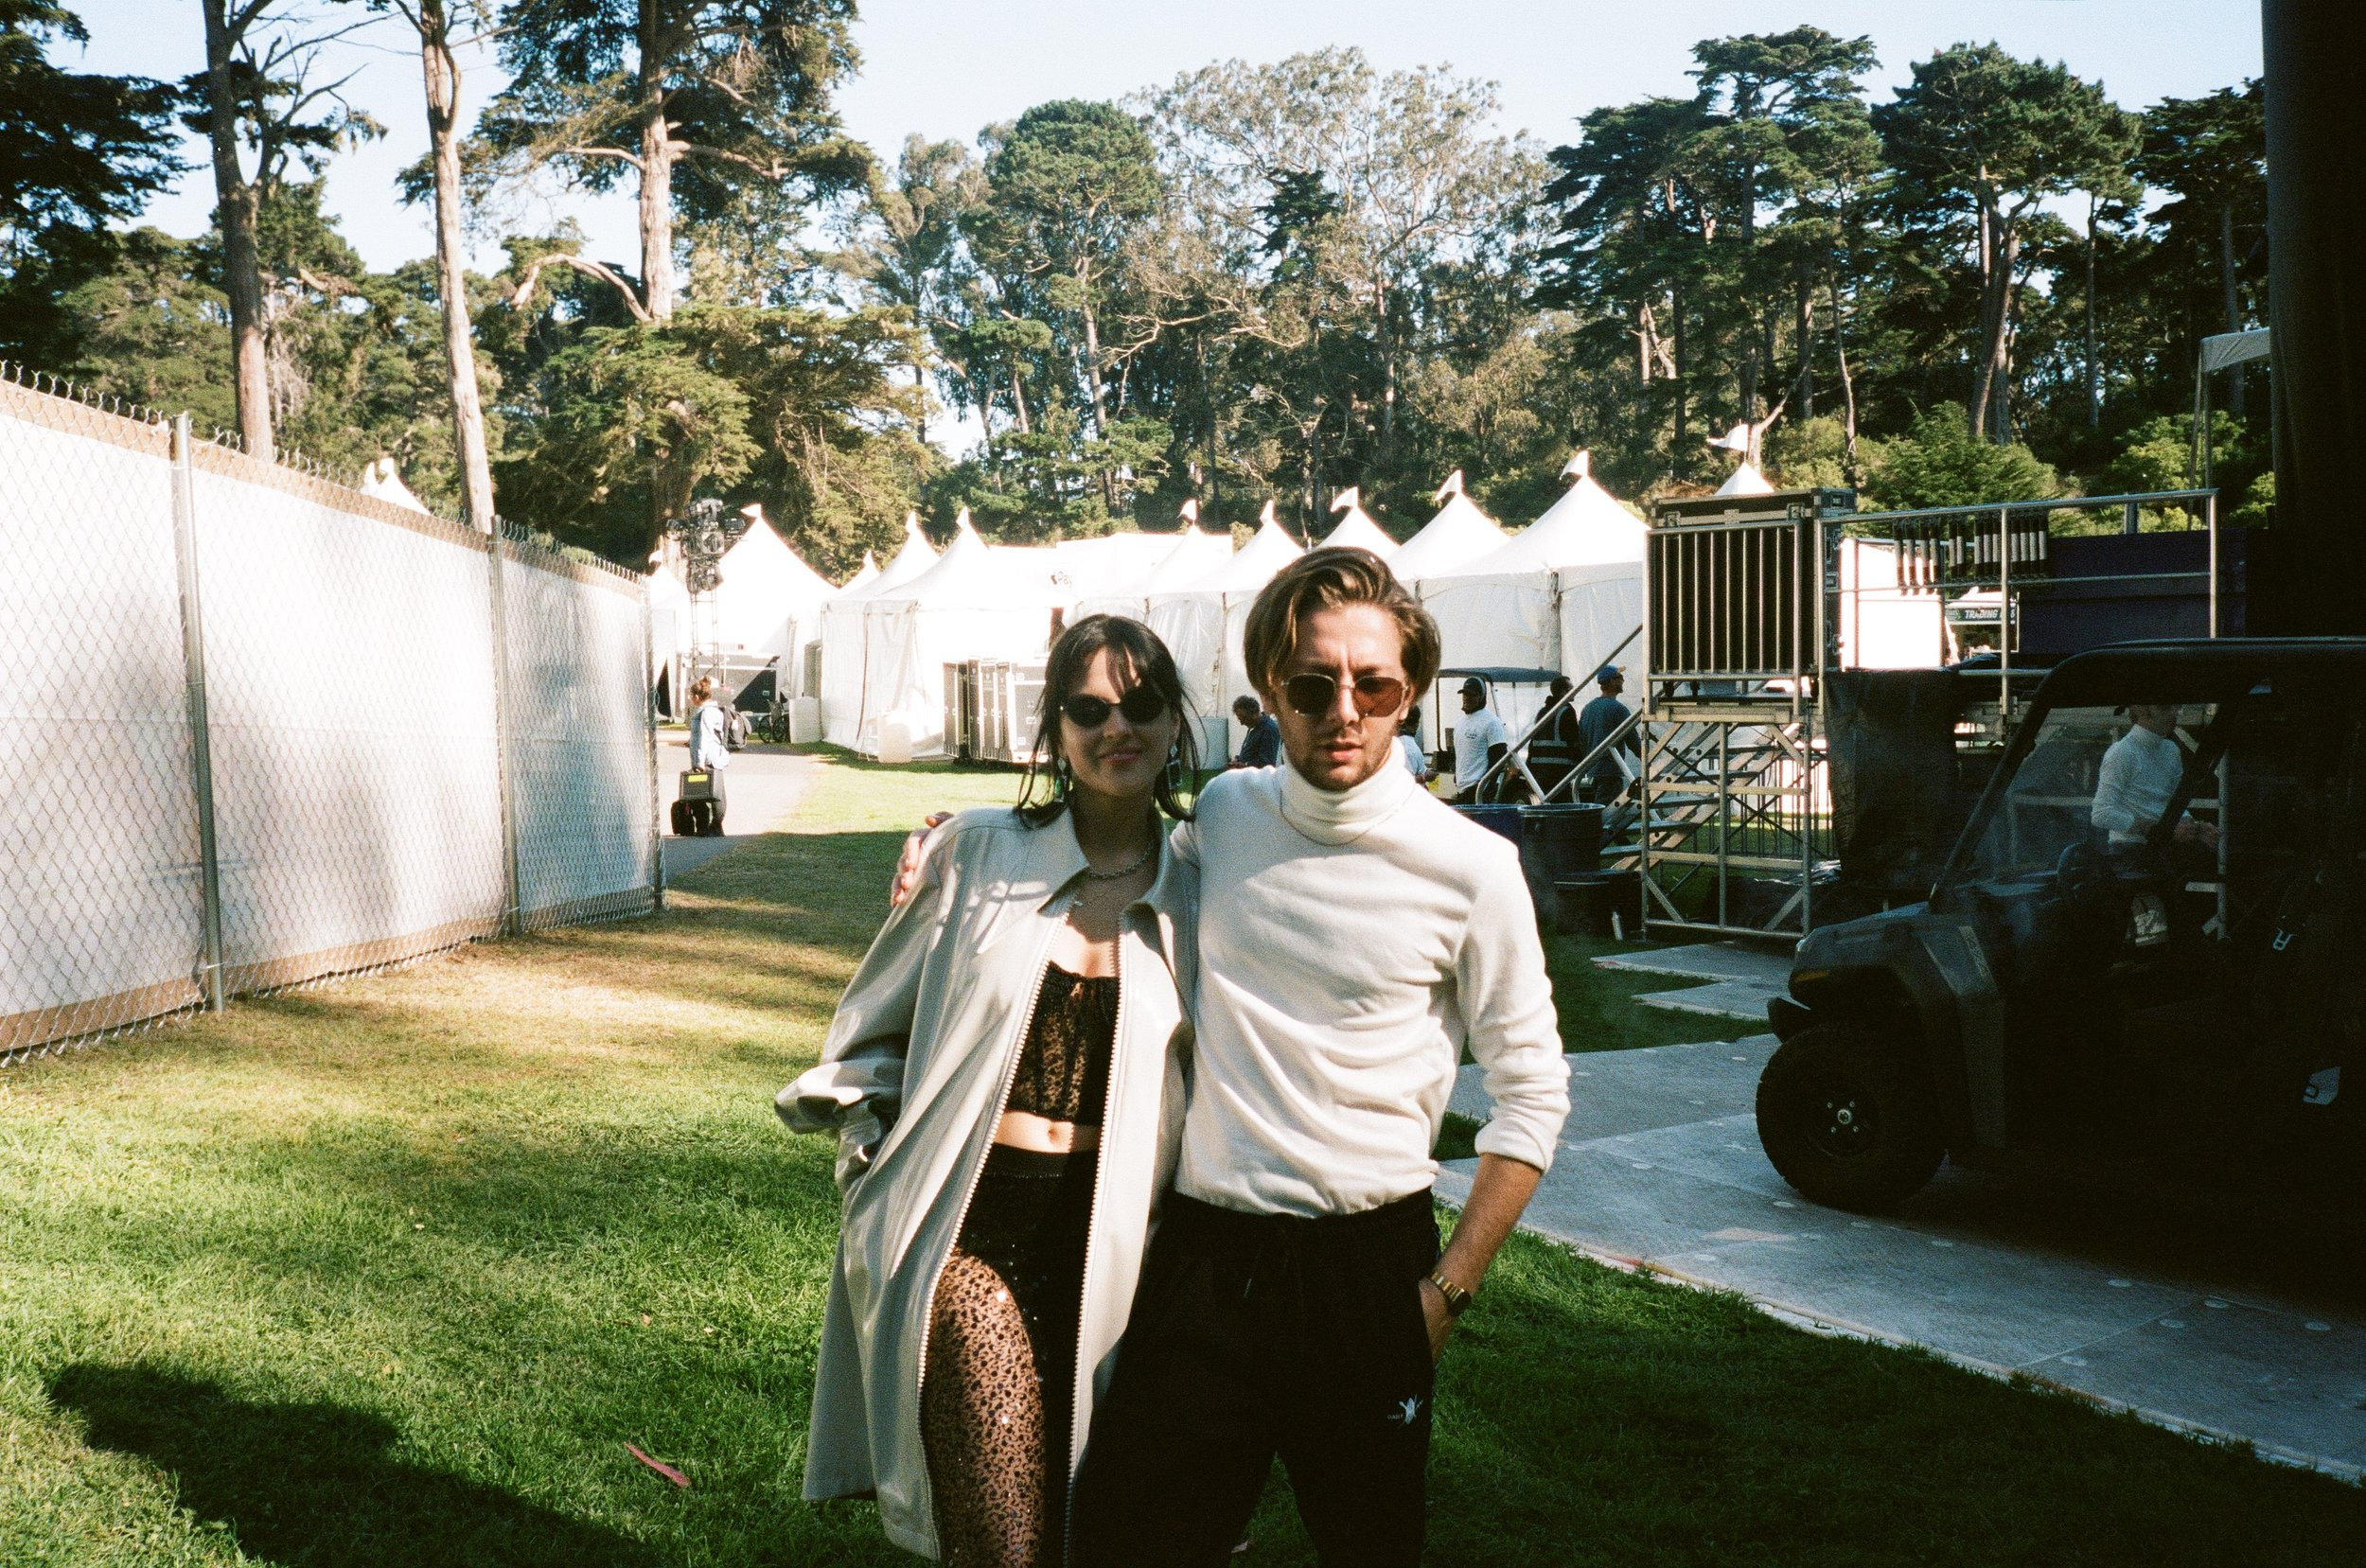 The-Marias-Outside-Lands-8.jpg